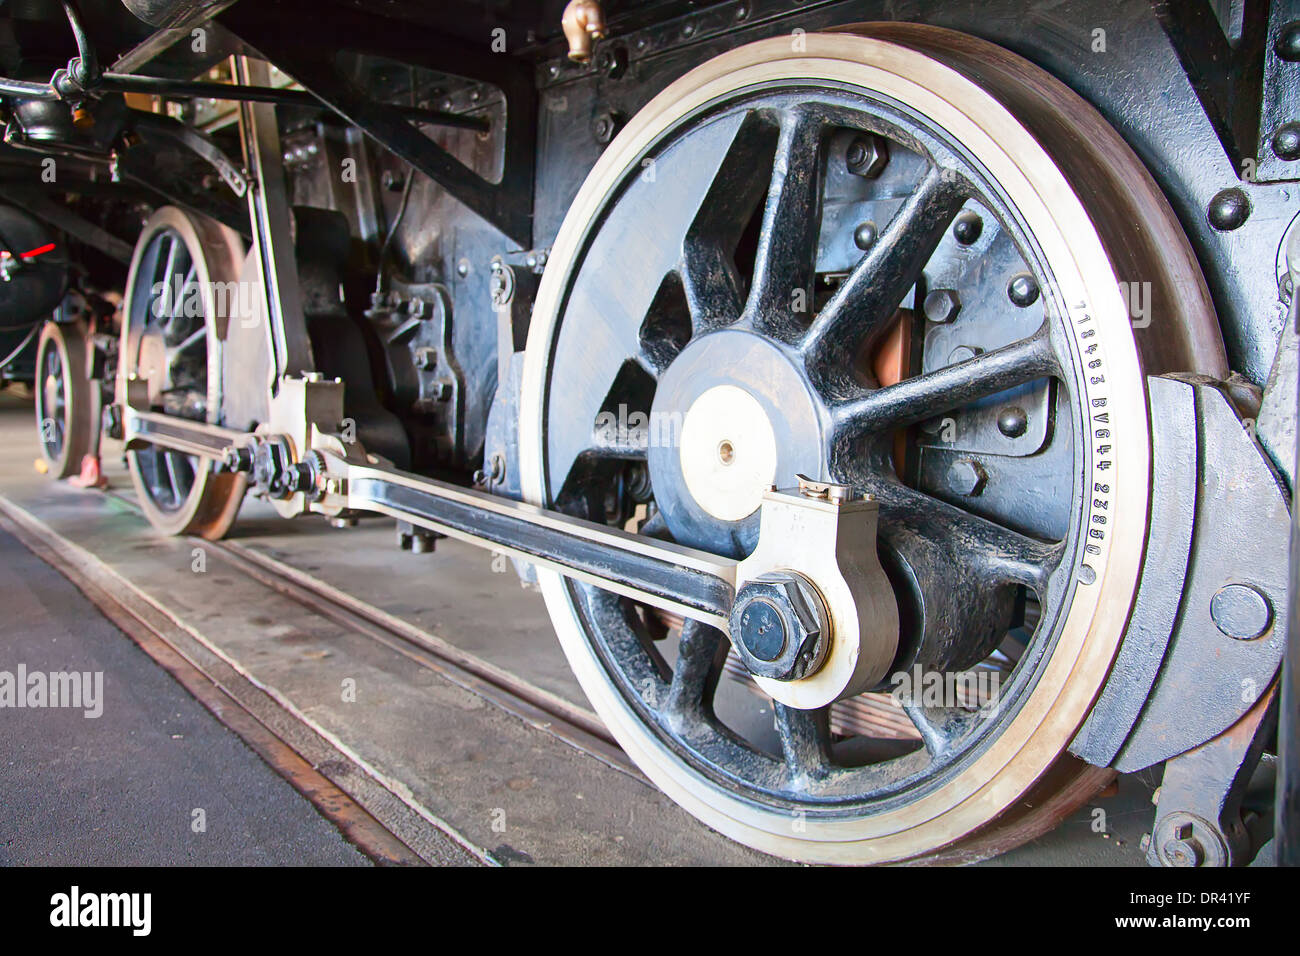 Fragment of the steam engine of the old train - Stock Photo